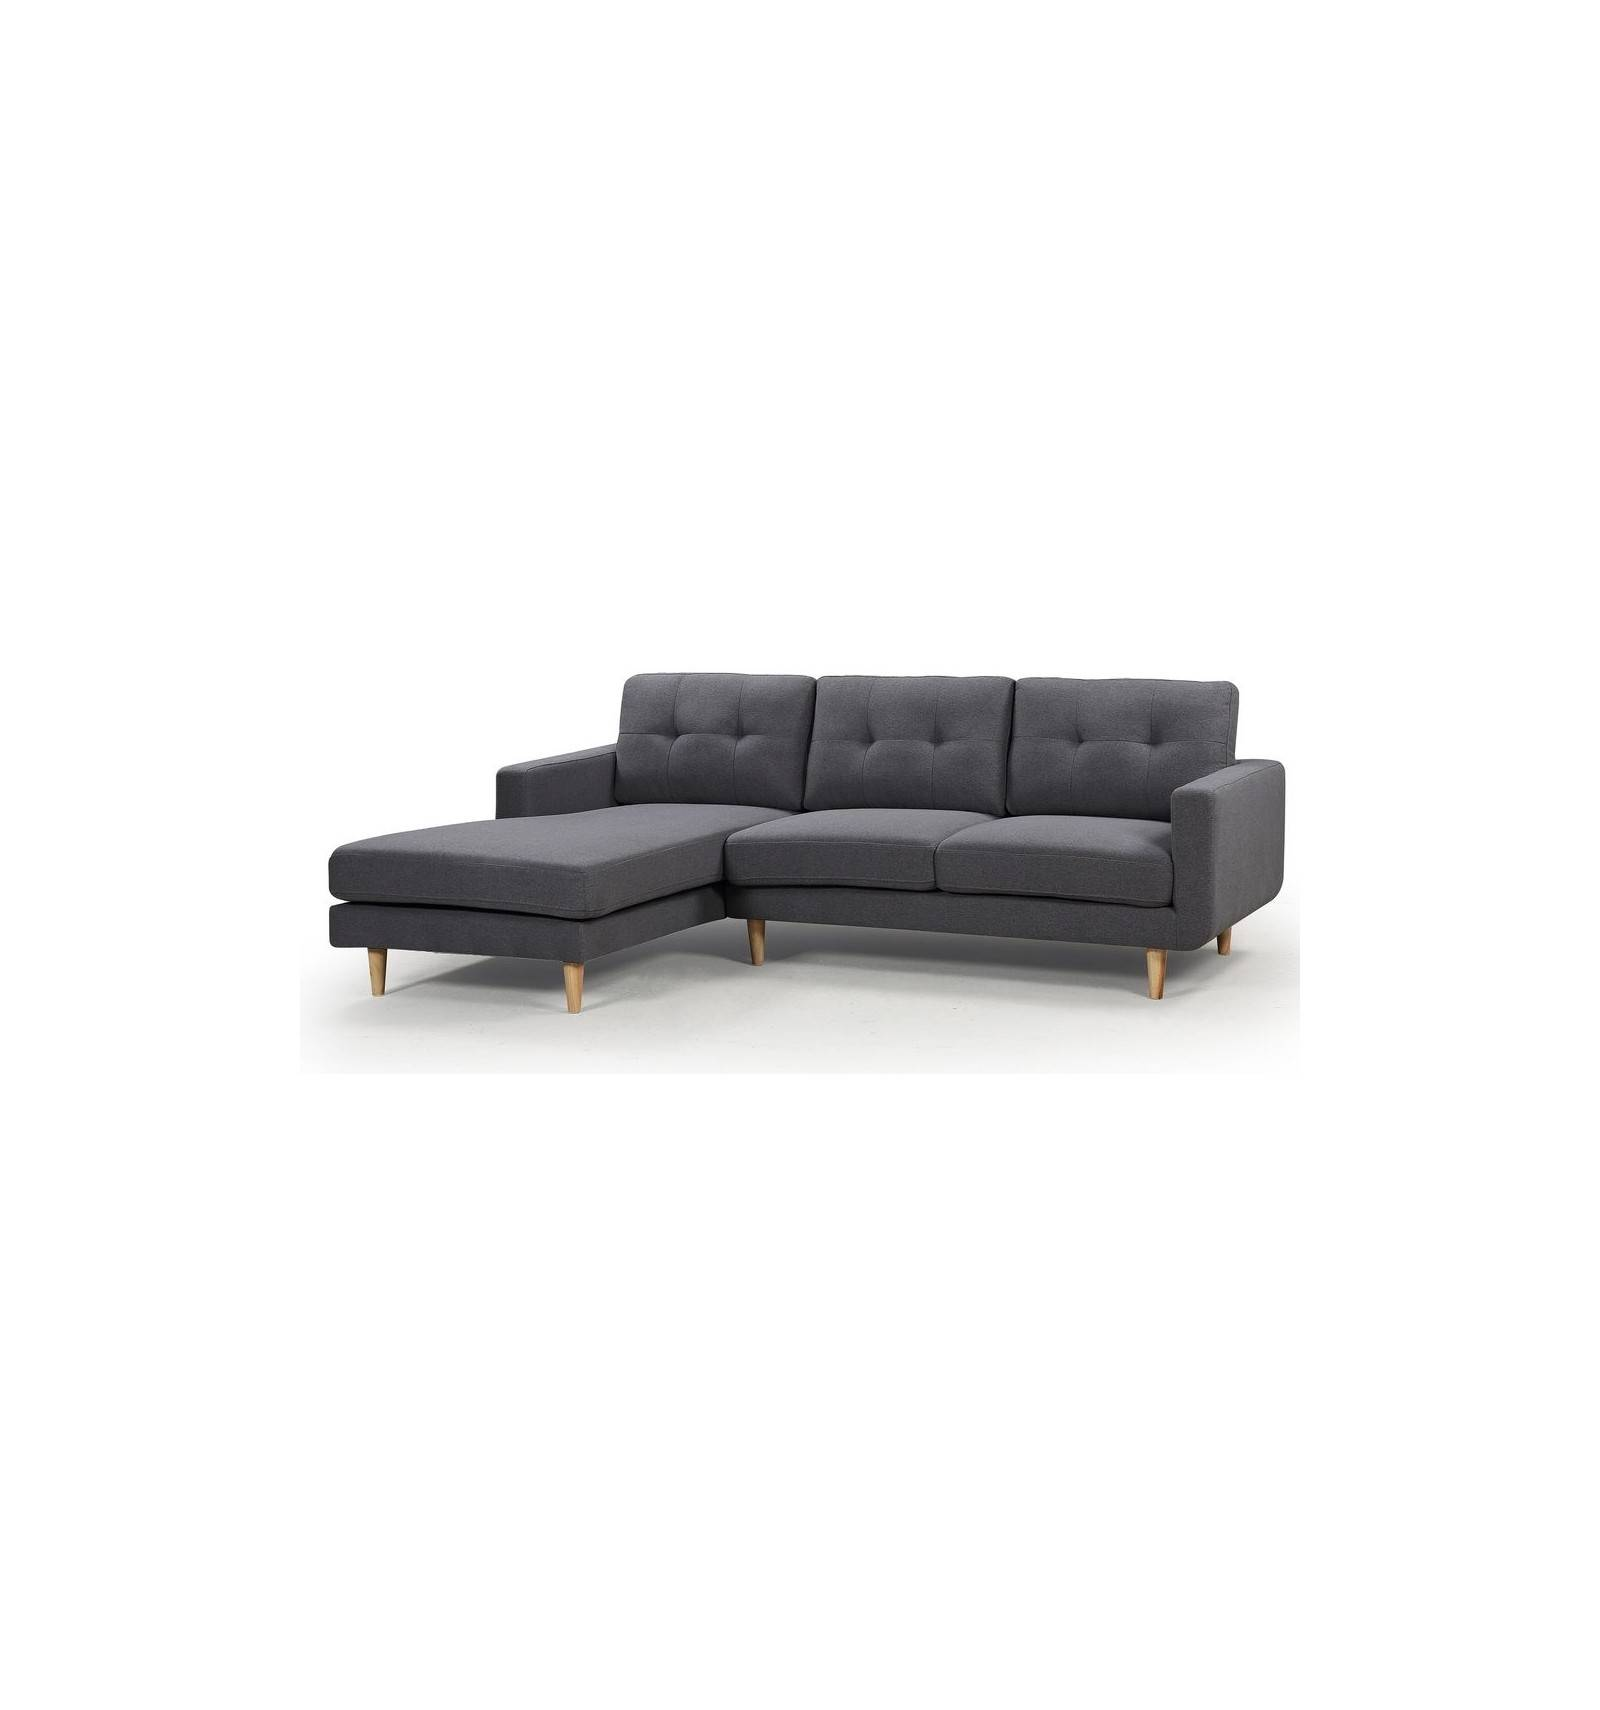 Couches Perth Chaise Sofas Perth Warehouse Direct Baci Living Room